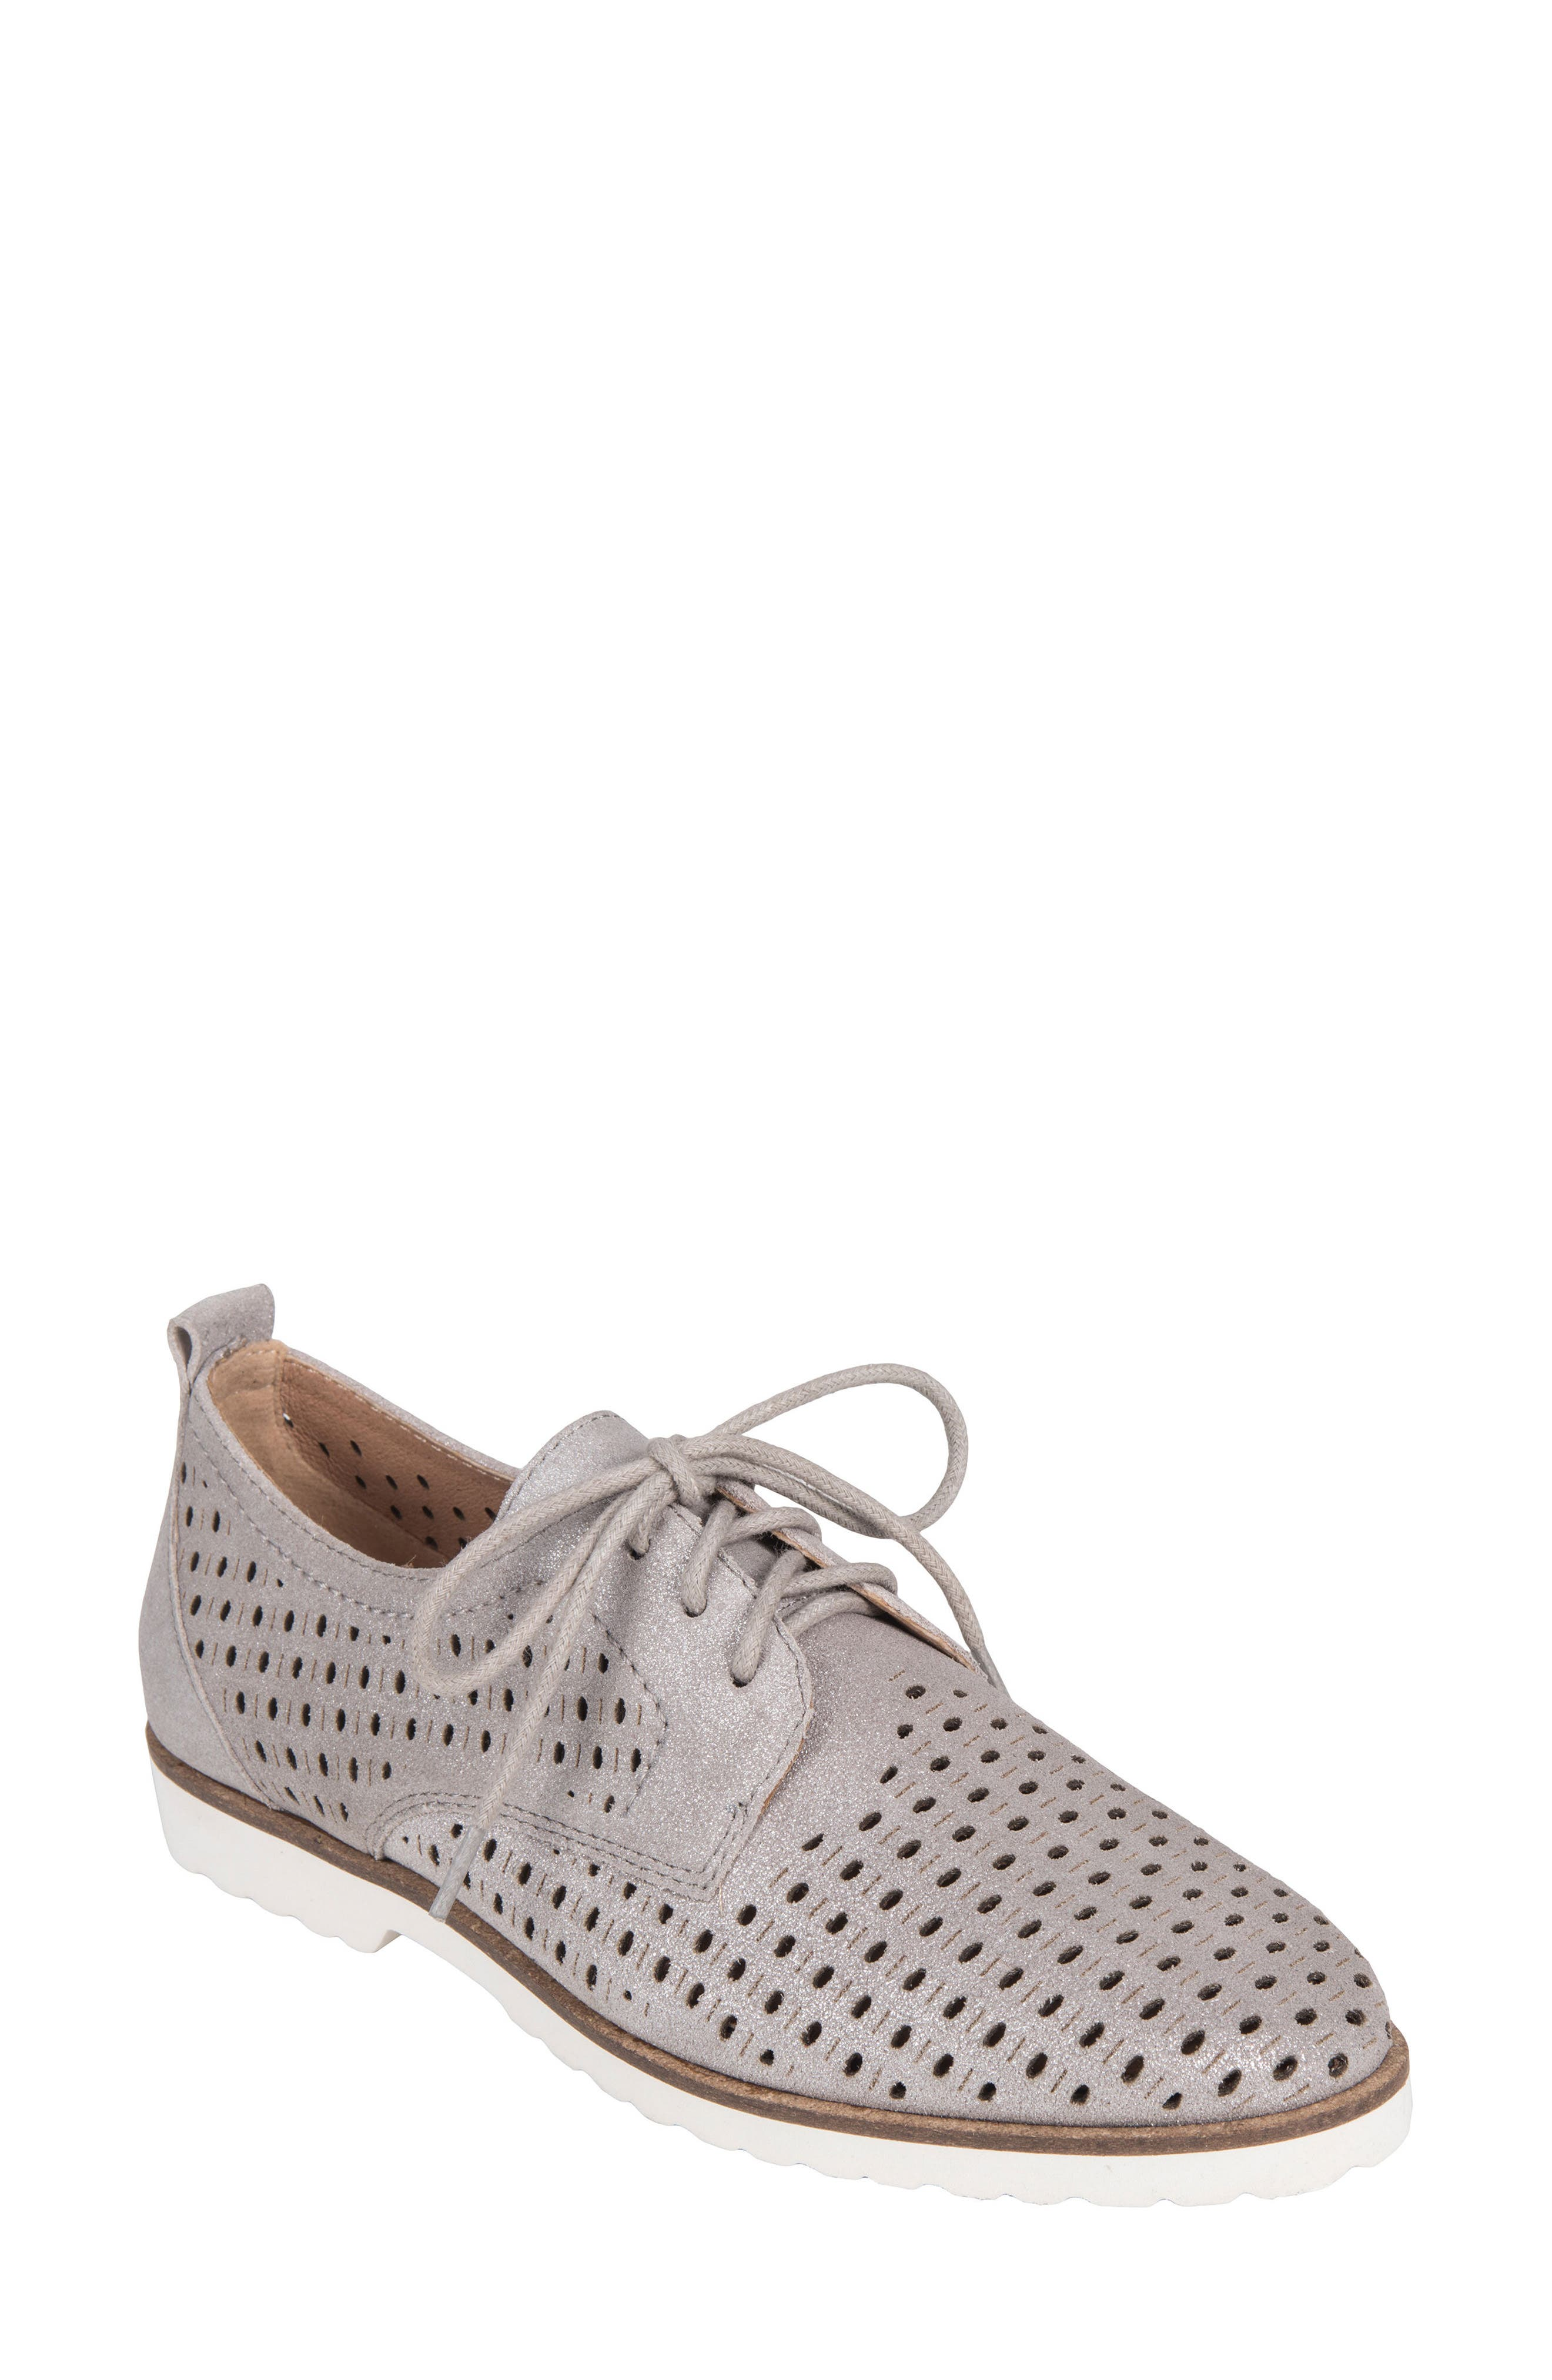 Camino Perforated Sneaker,                         Main,                         color, SILVER METALLIC SUEDE